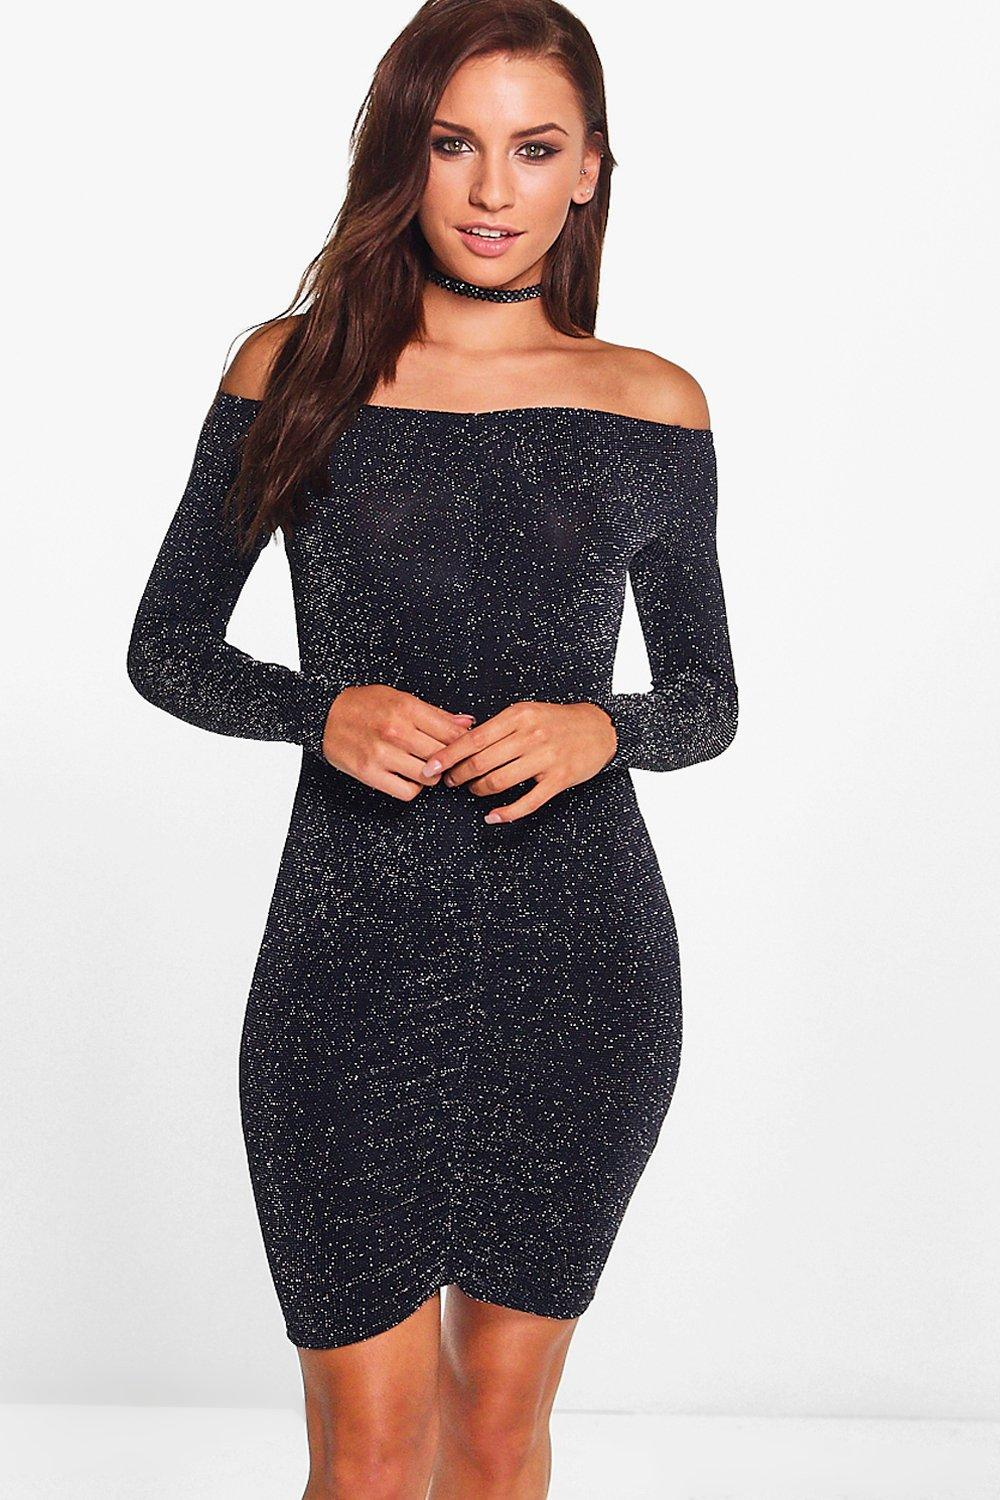 Hera Metallic Rouched Long Sleeved Bodycon Dress